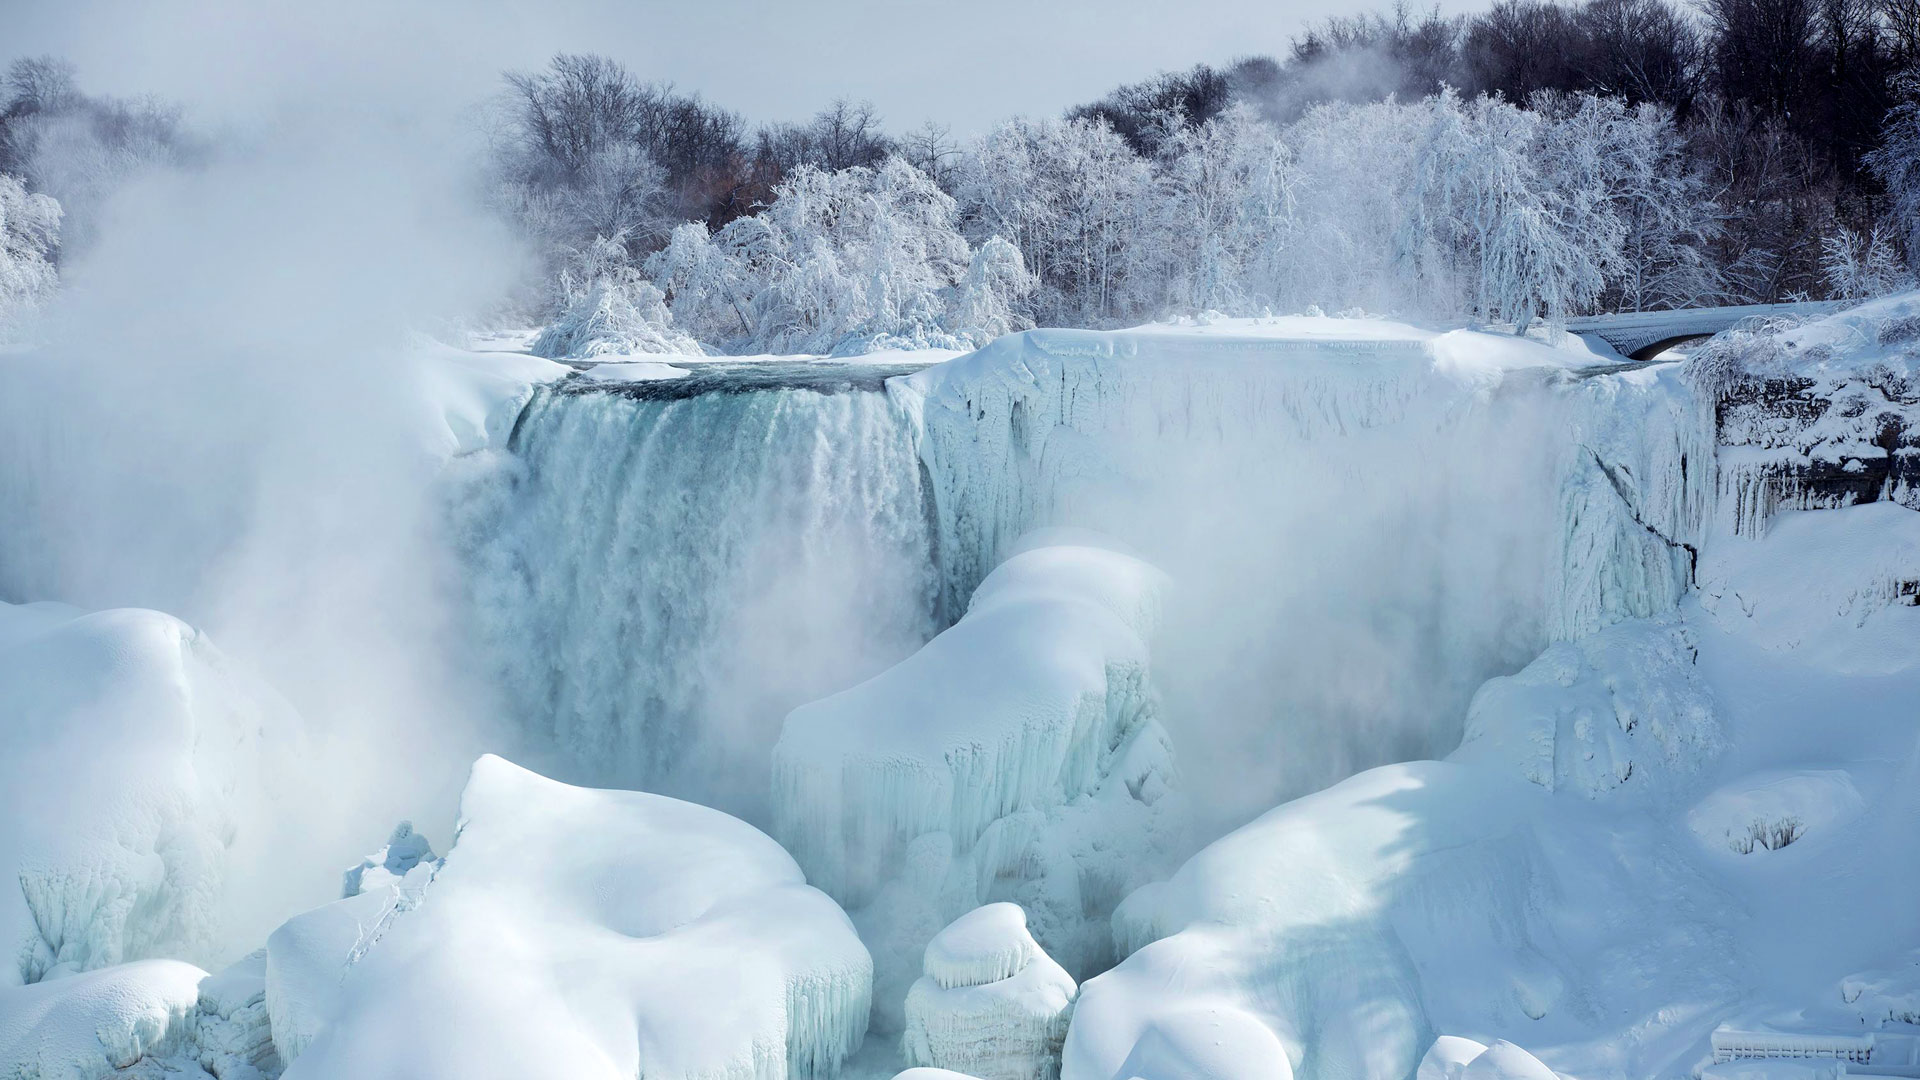 American Falls as seen from Niagara Falls, Ontario, Canada, February 19, 2015 (© ZUMA/REX)